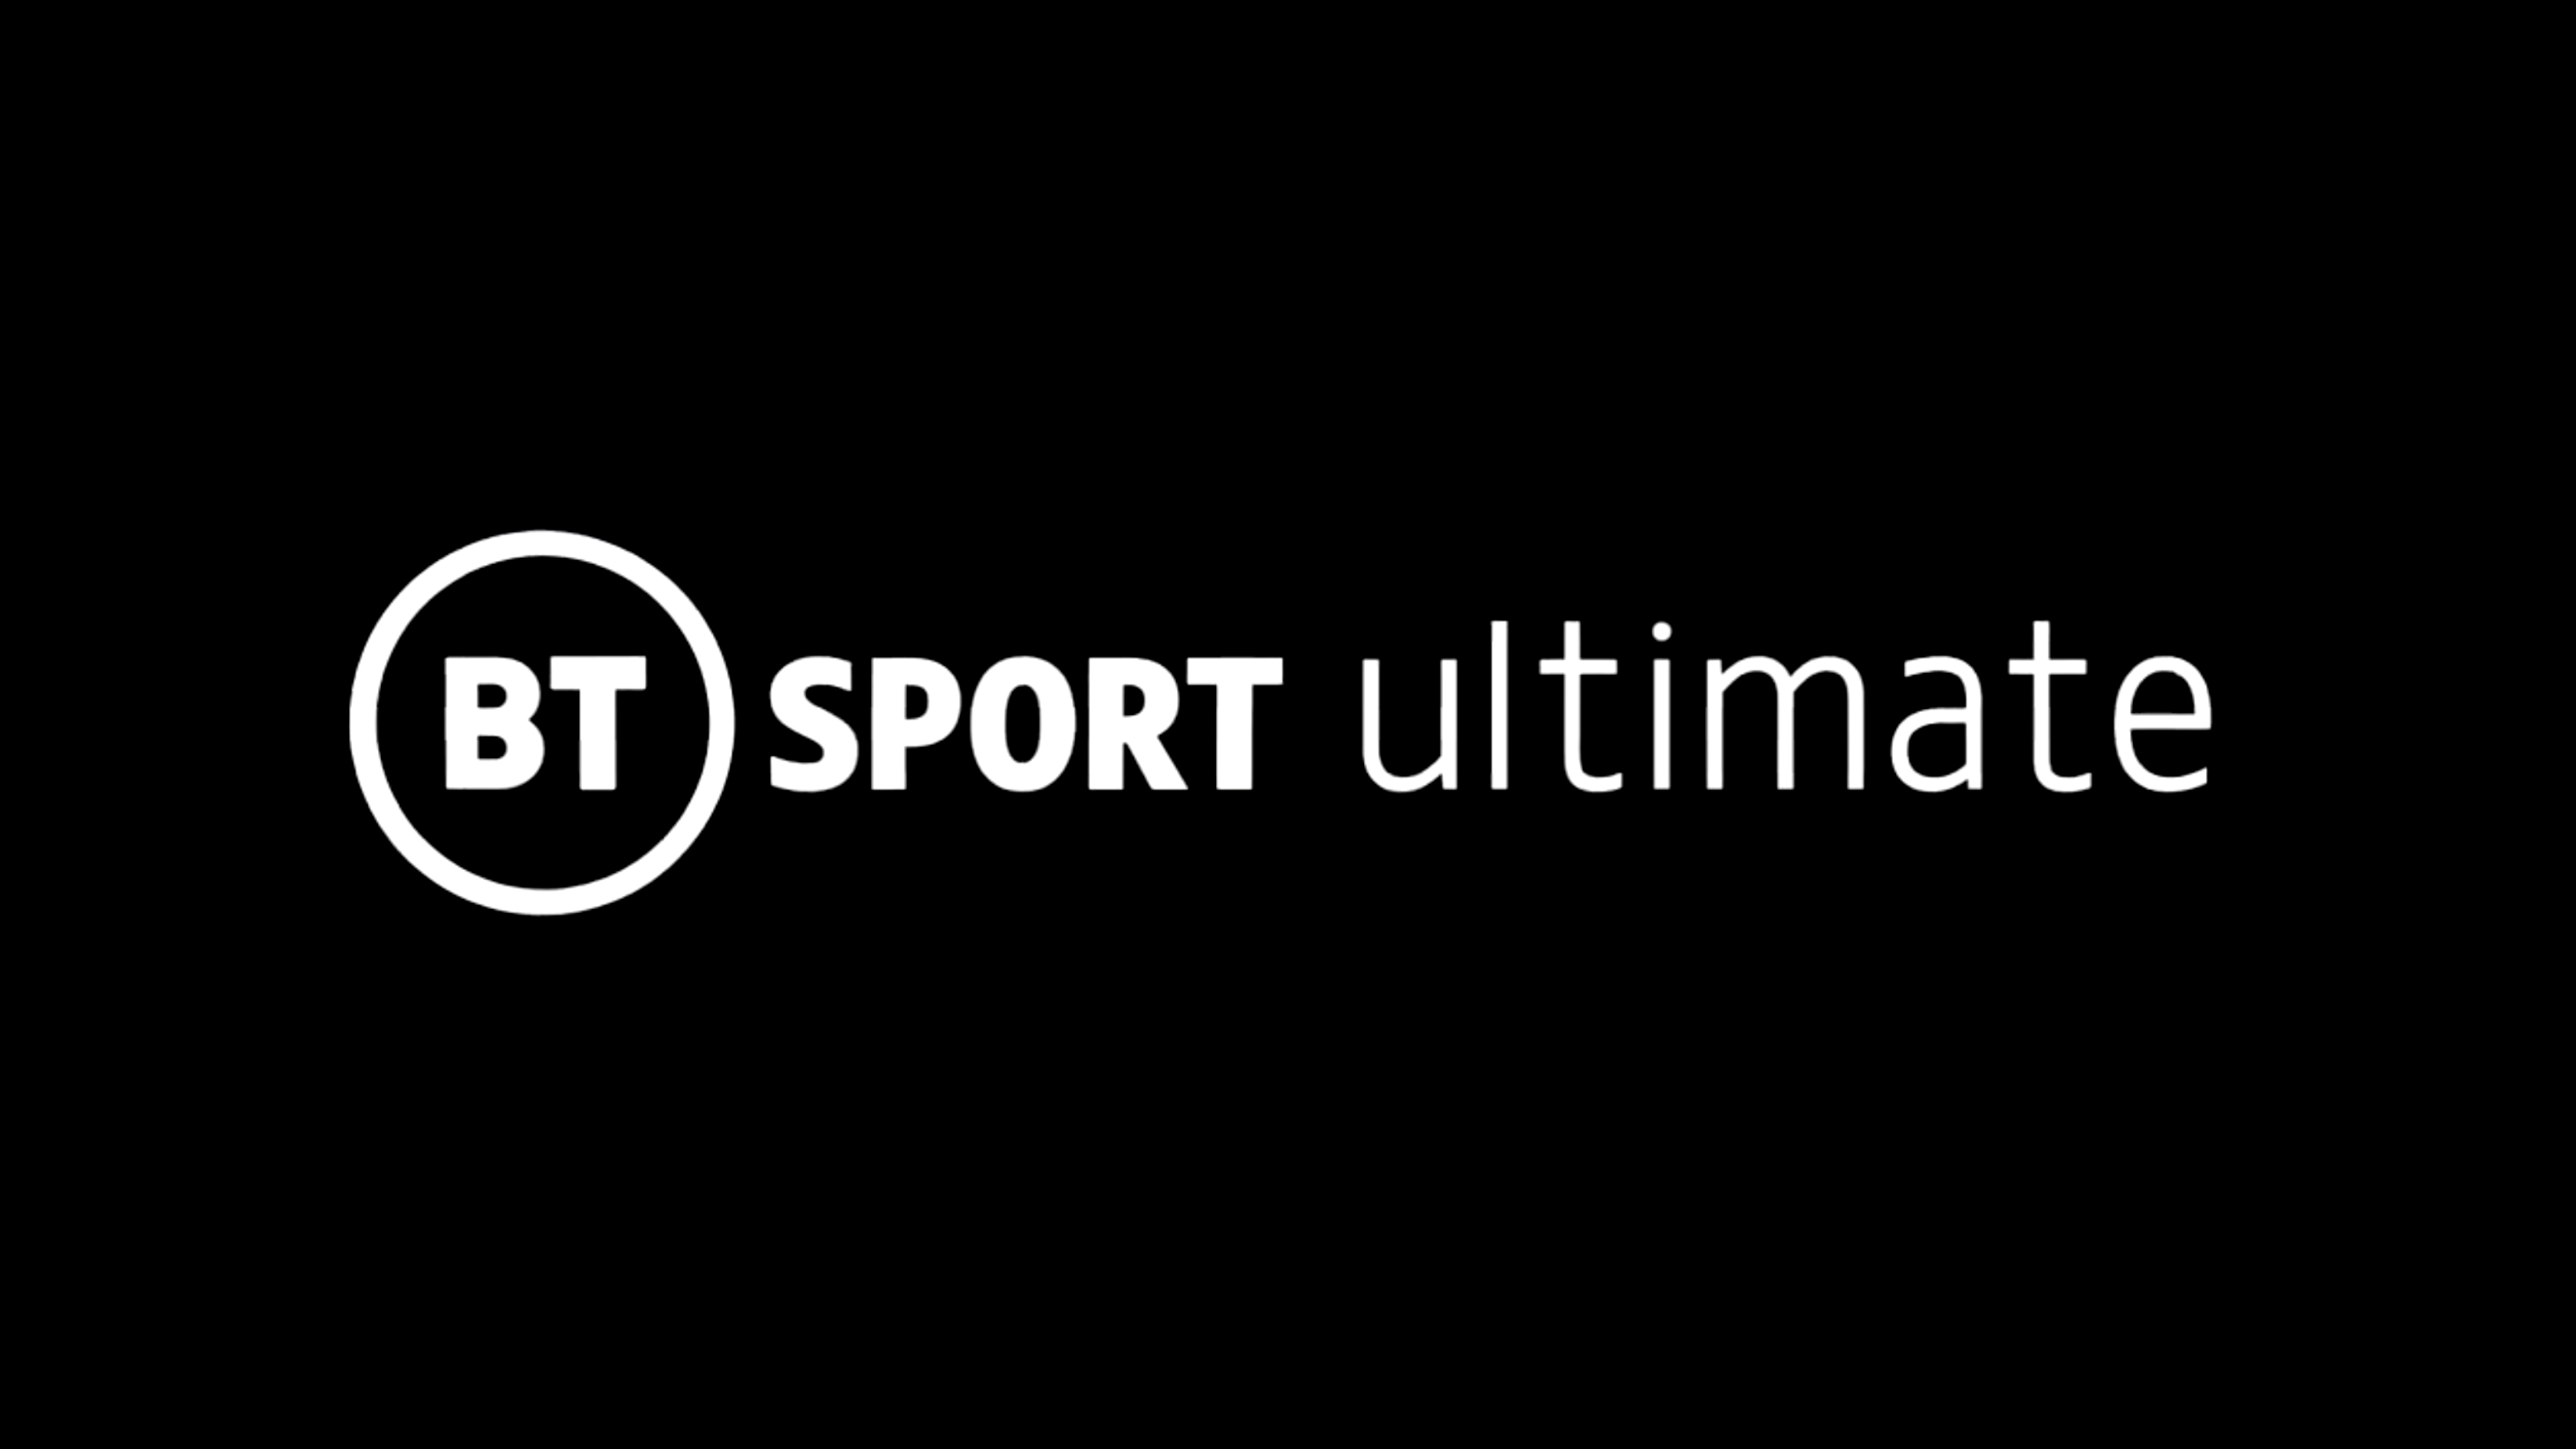 BT Sport Ultimate will deliver HDR football but only on phones.